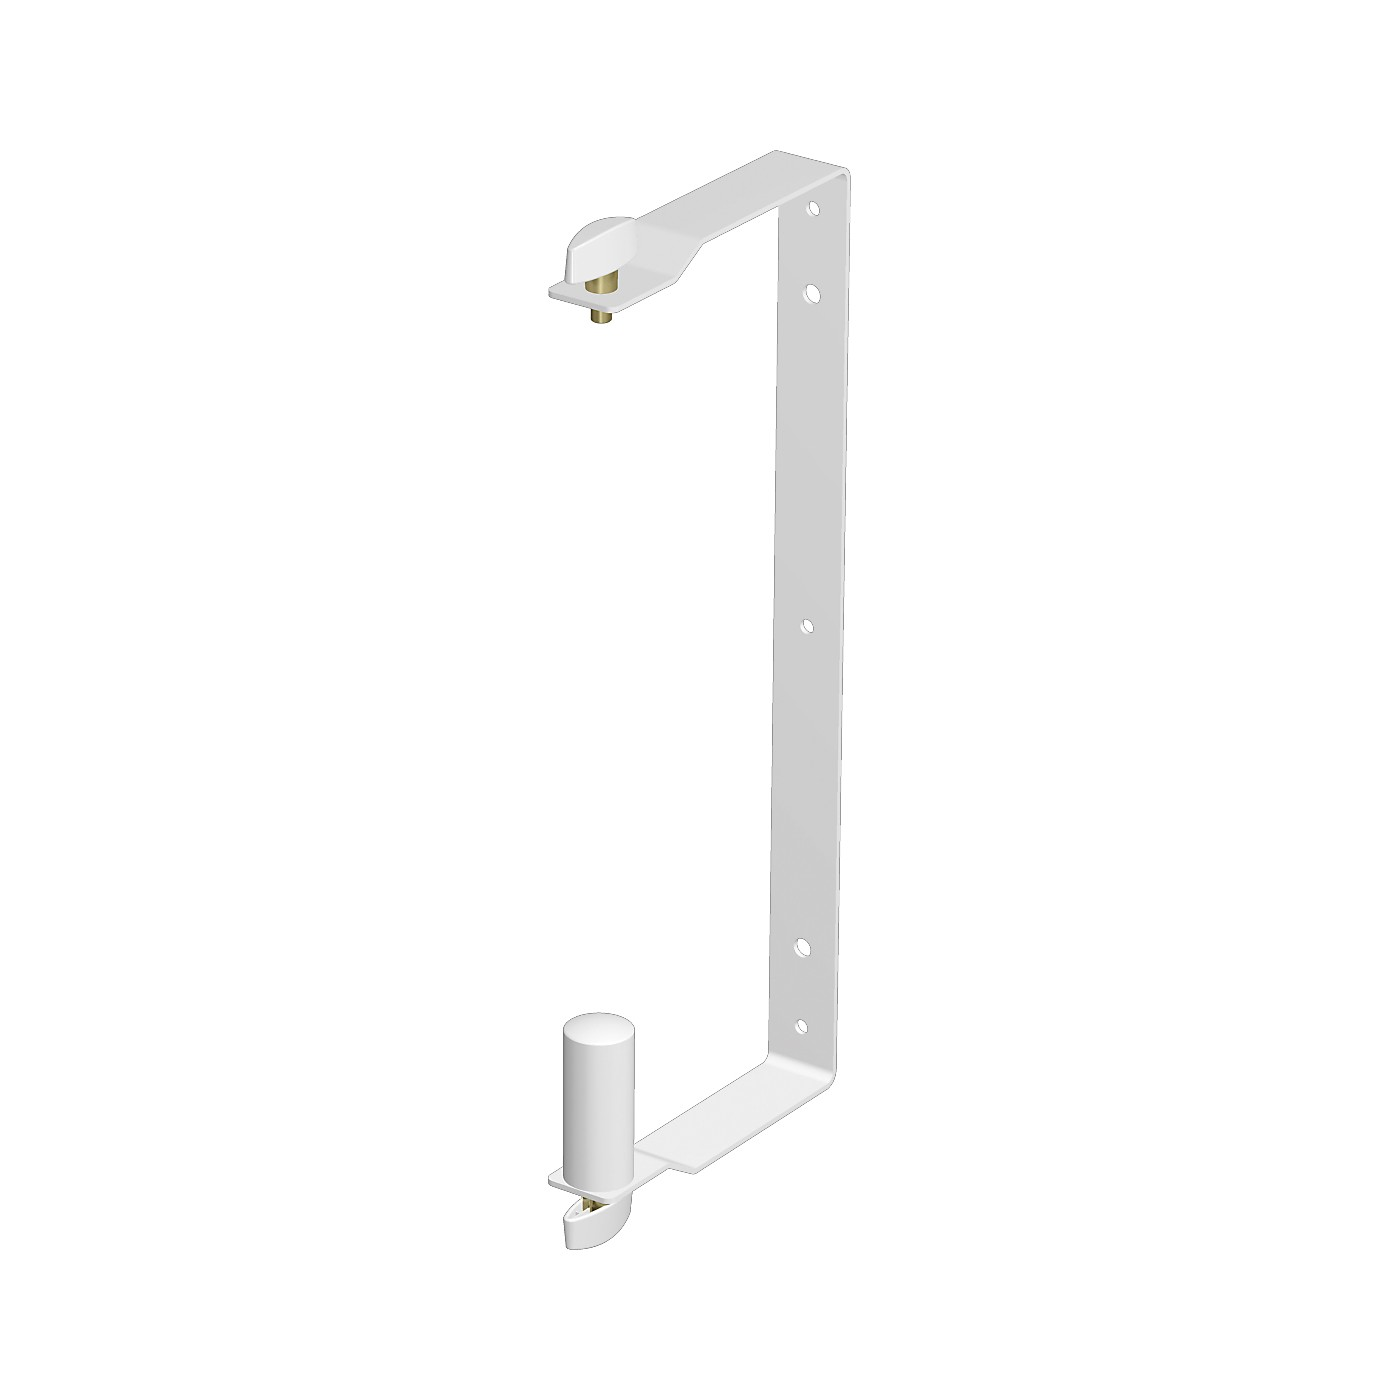 Behringer WB210-WH White Wall Mount Bracket for EUROLIVE B210 Series Speakers thumbnail